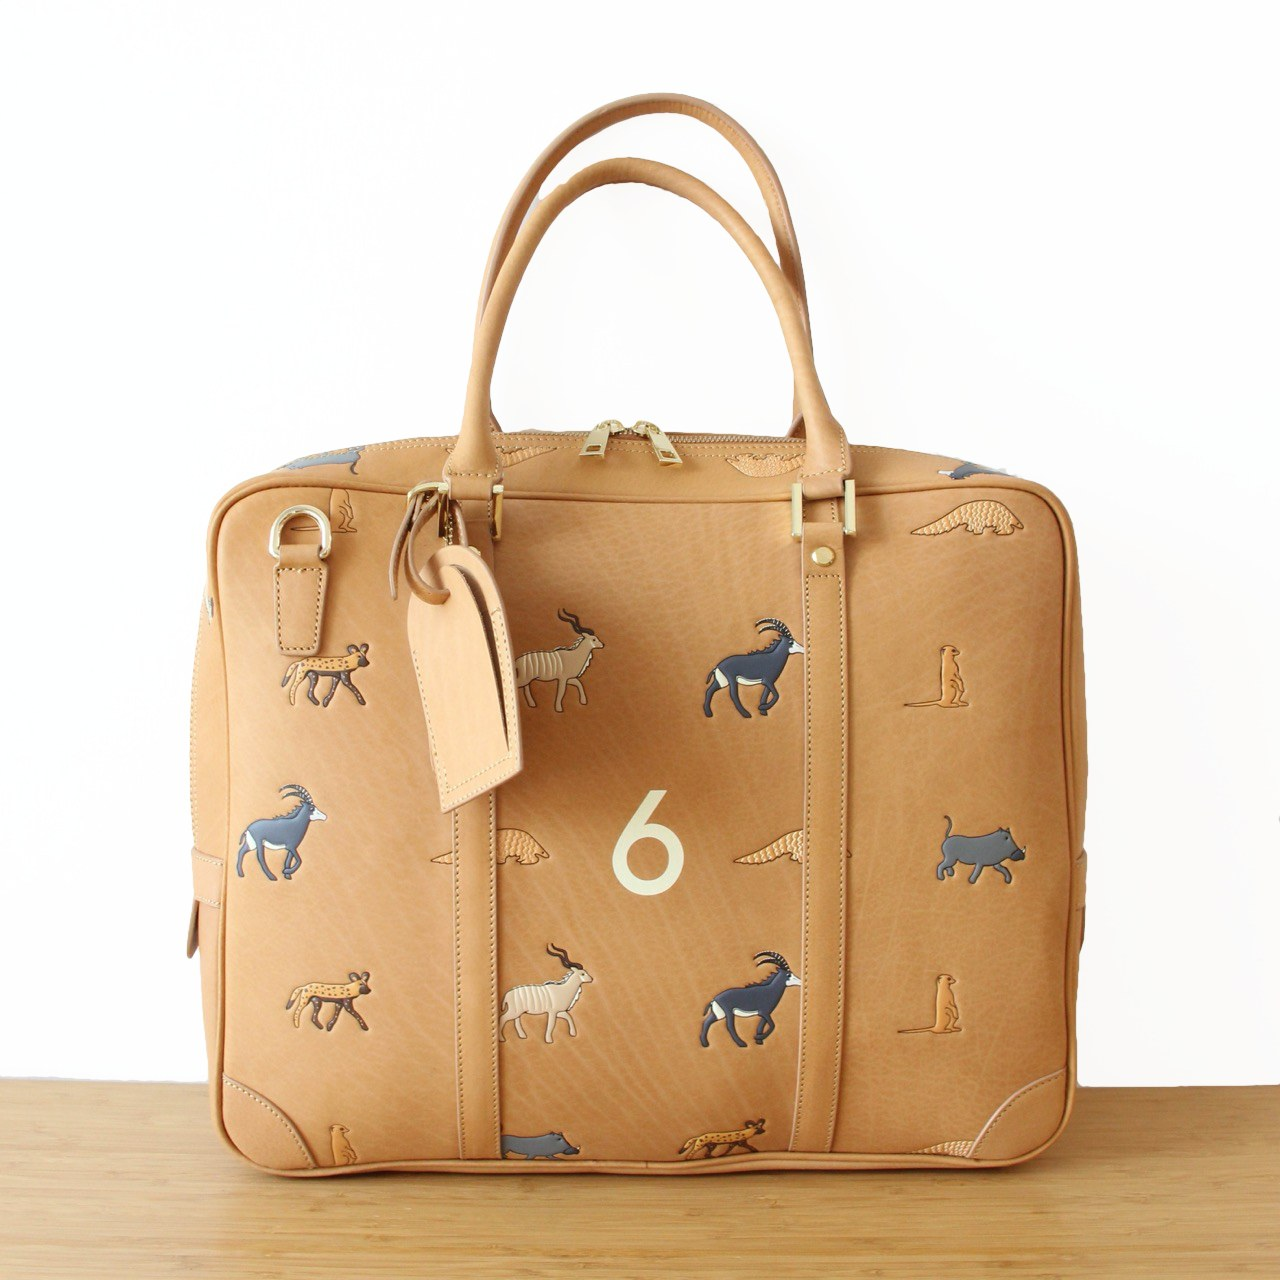 Savanna Bag n 6 FRONT